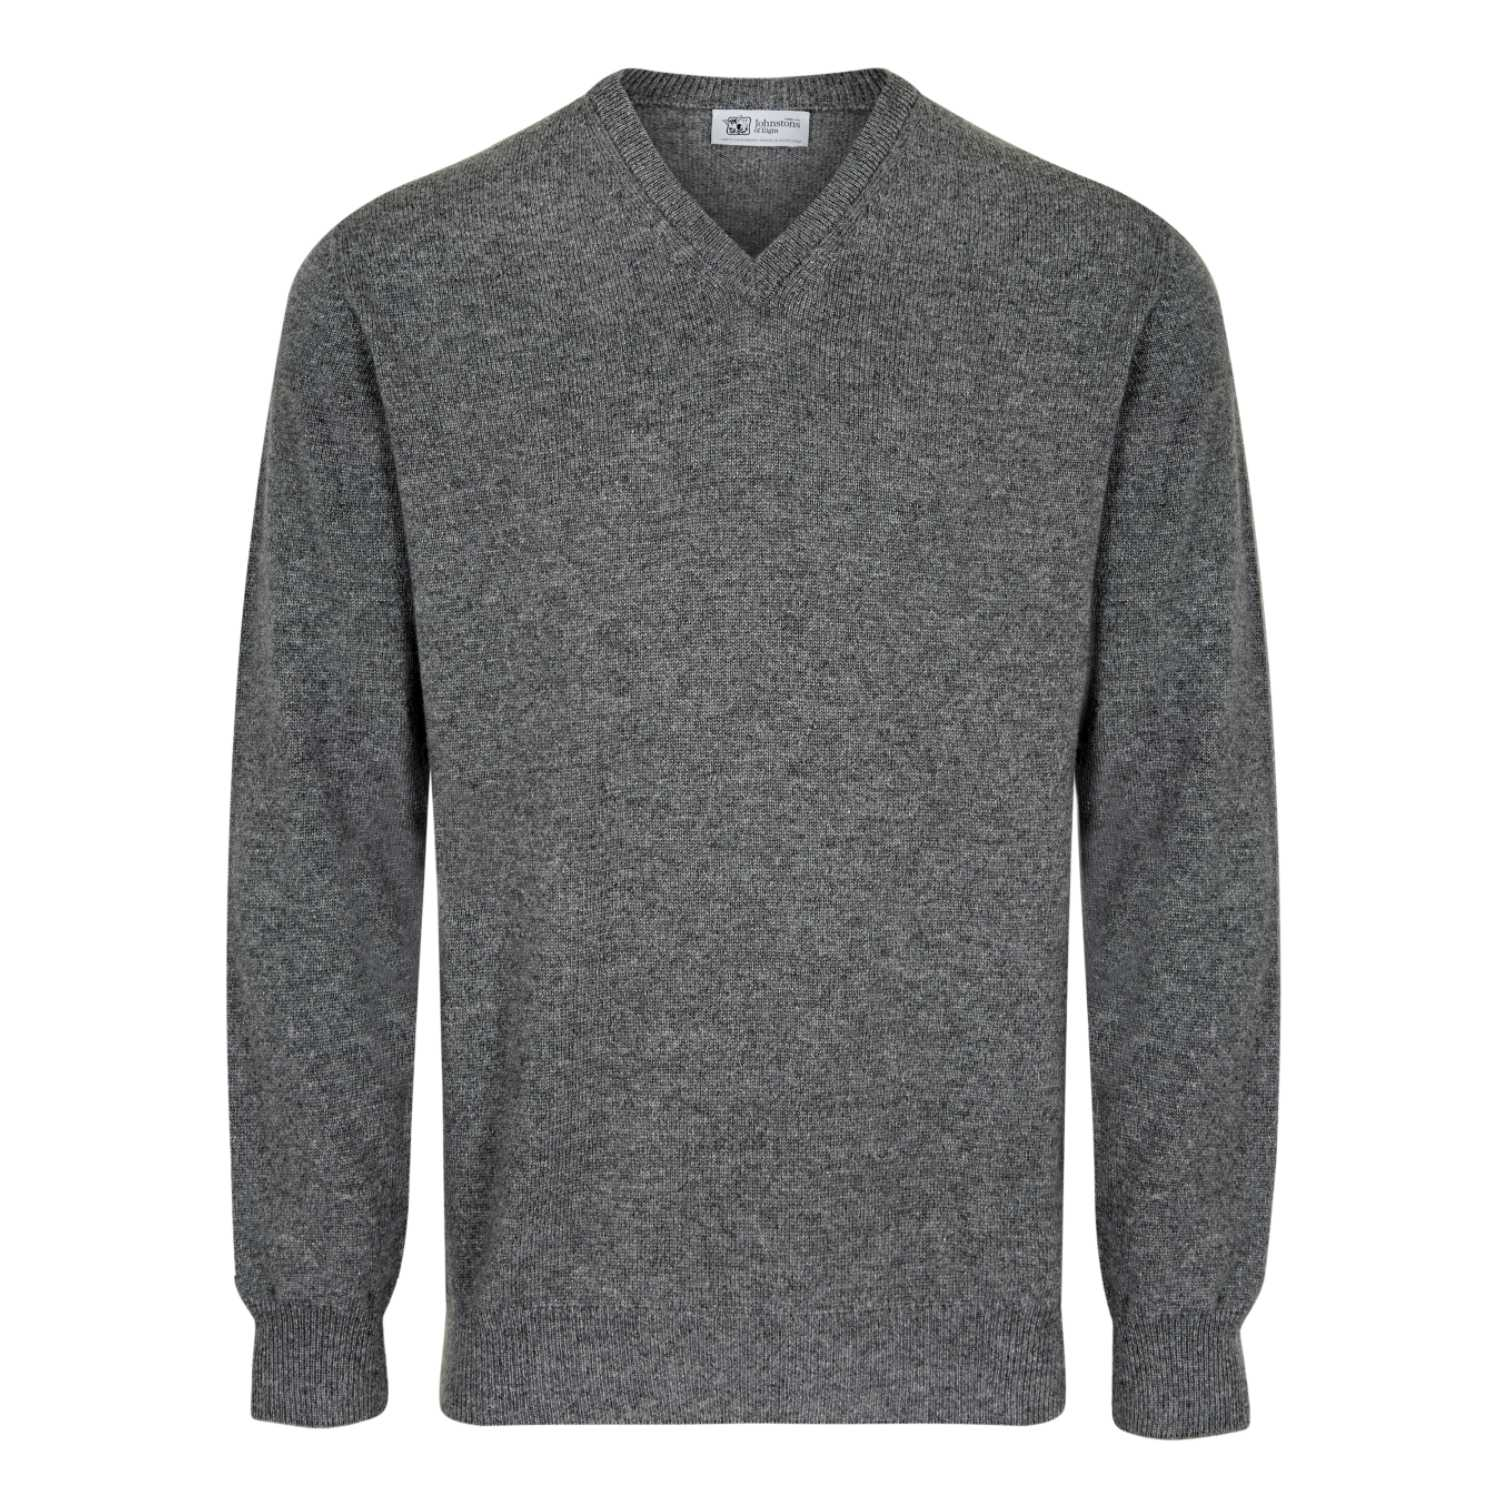 Johnstons of Elgin Mens 3 Ply Cashmere V Neck Sweater